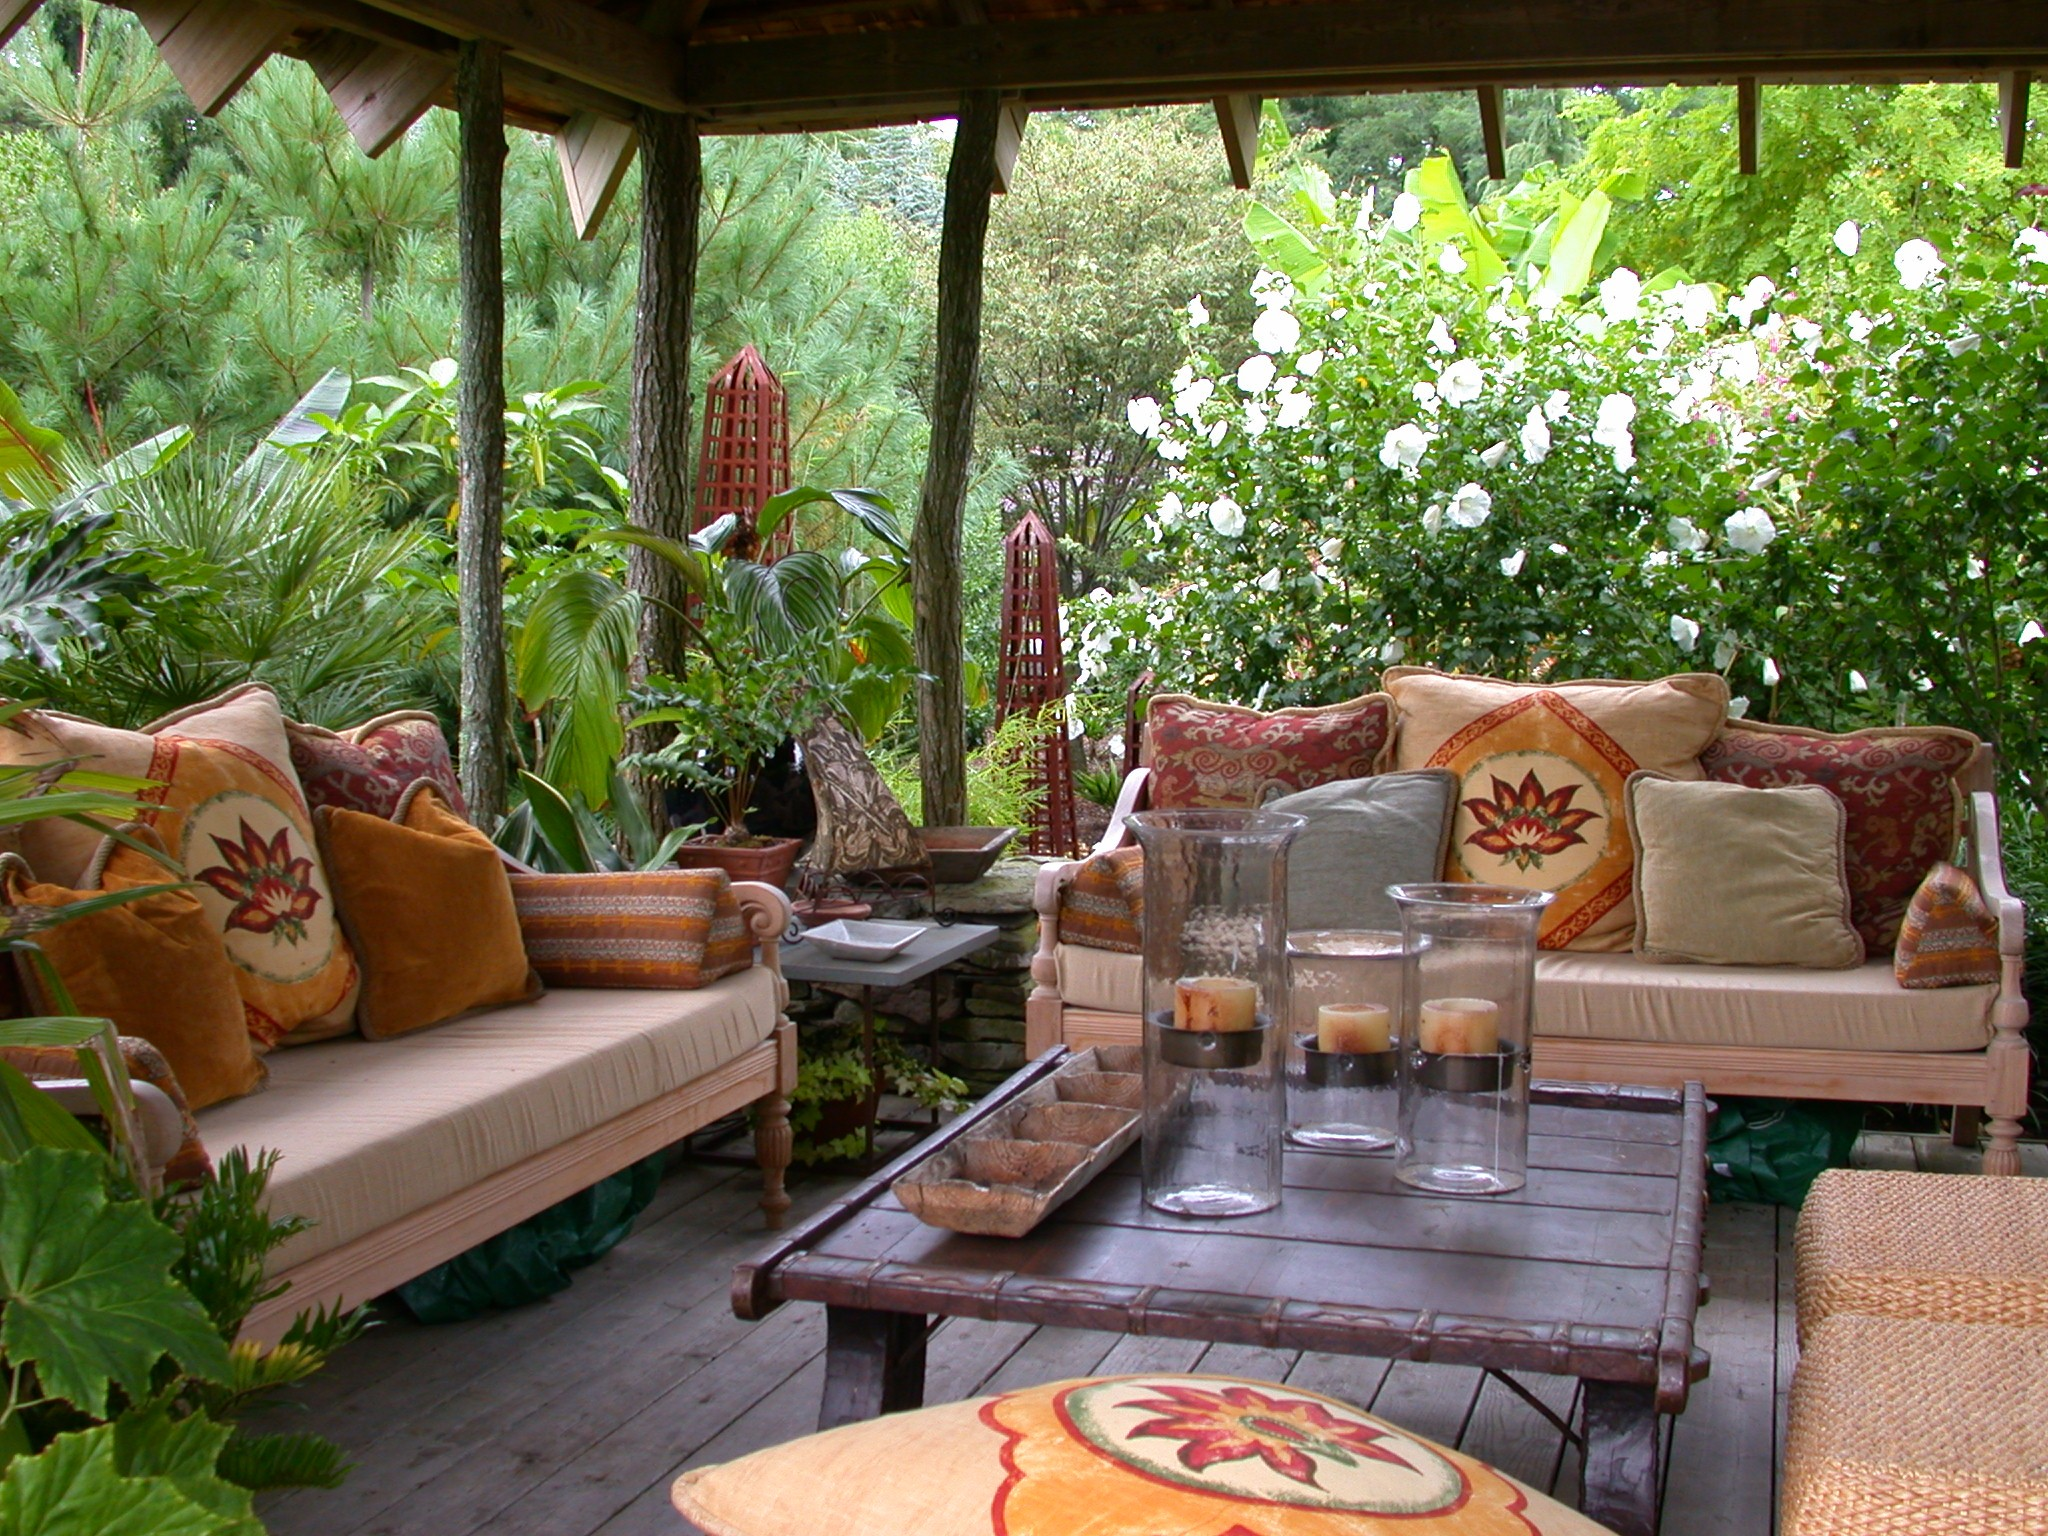 the perfect outdoor room source - The Outdoor Room